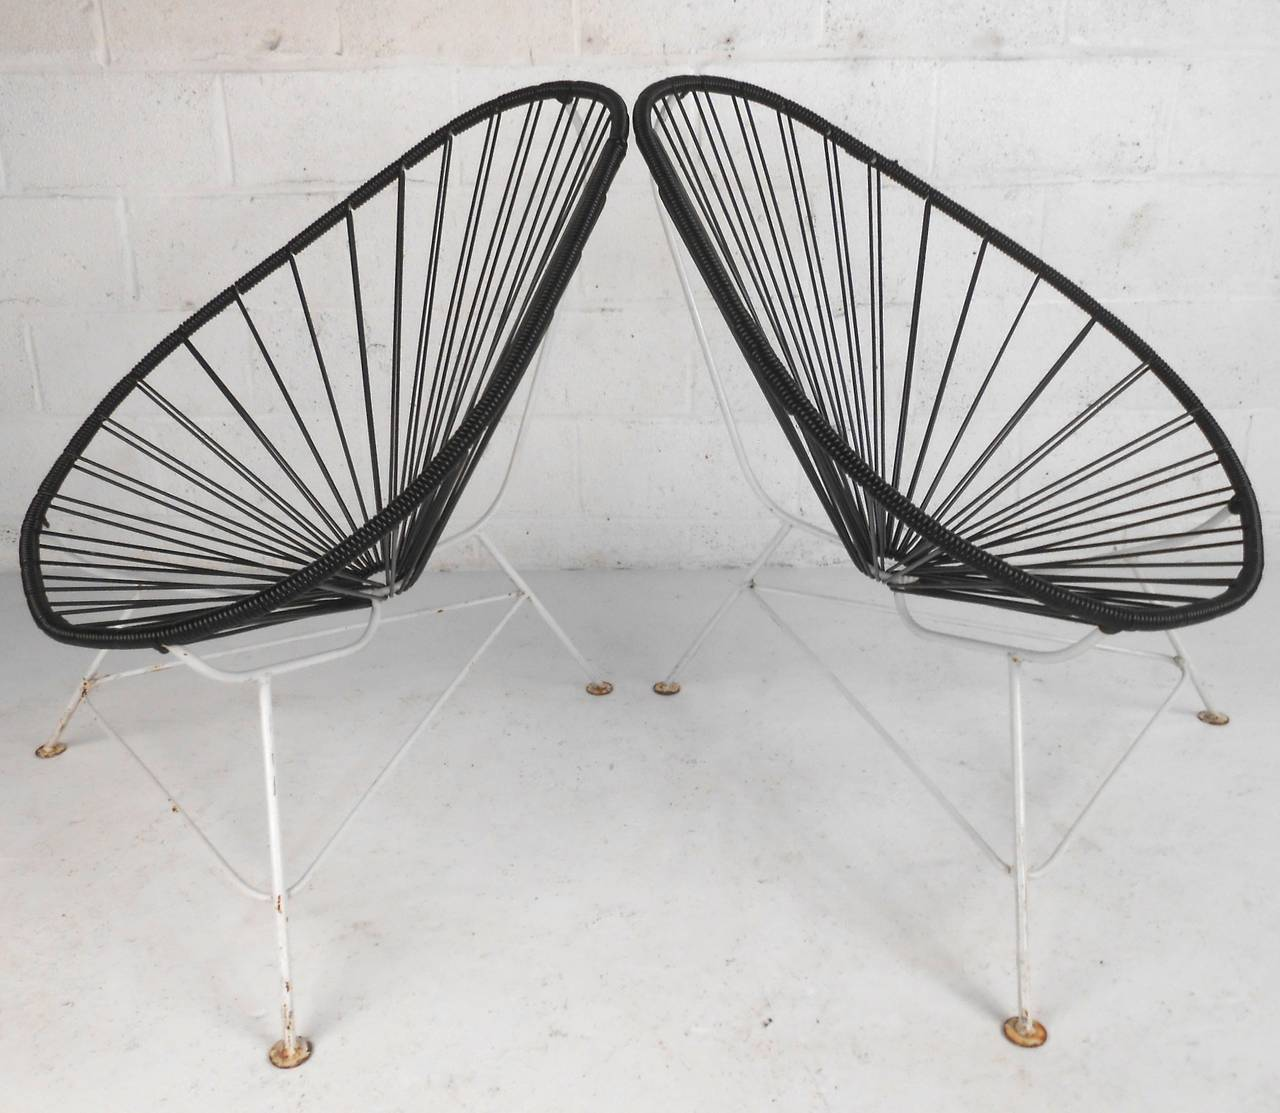 Acapulco Chair For Sale Pair Mid Century Modern Acapulco Chairs For Sale At 1stdibs